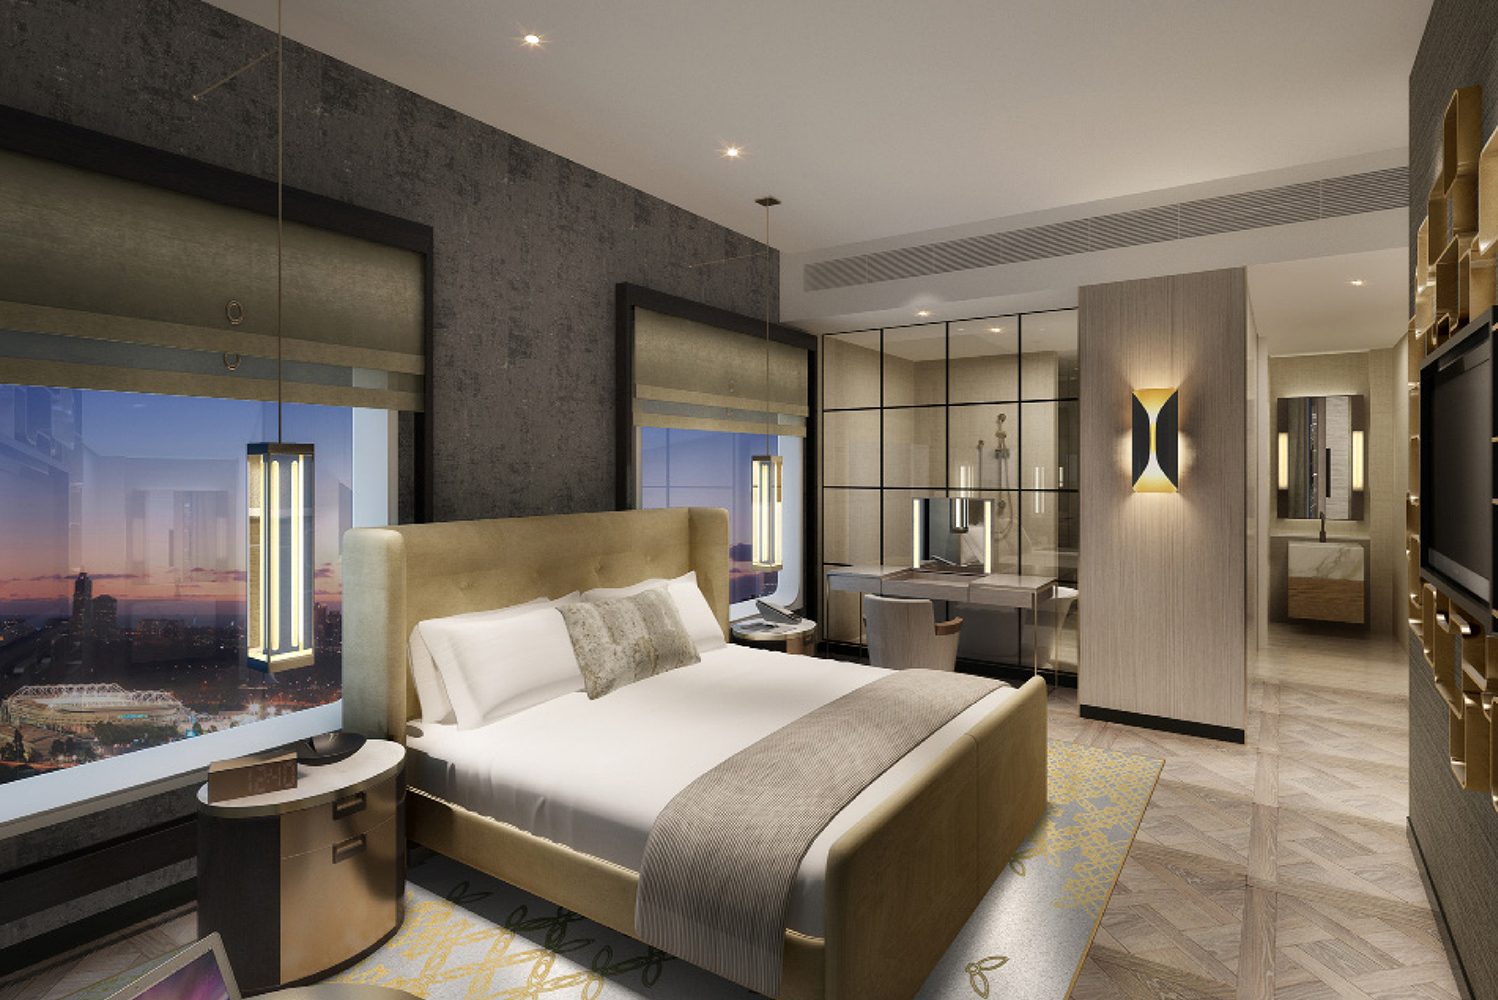 Each room has light filled space and amenity from luxe toiletries, mini bar with local wines and boutique brews, smart TVs and complimentary Wi-Fi connectivity.